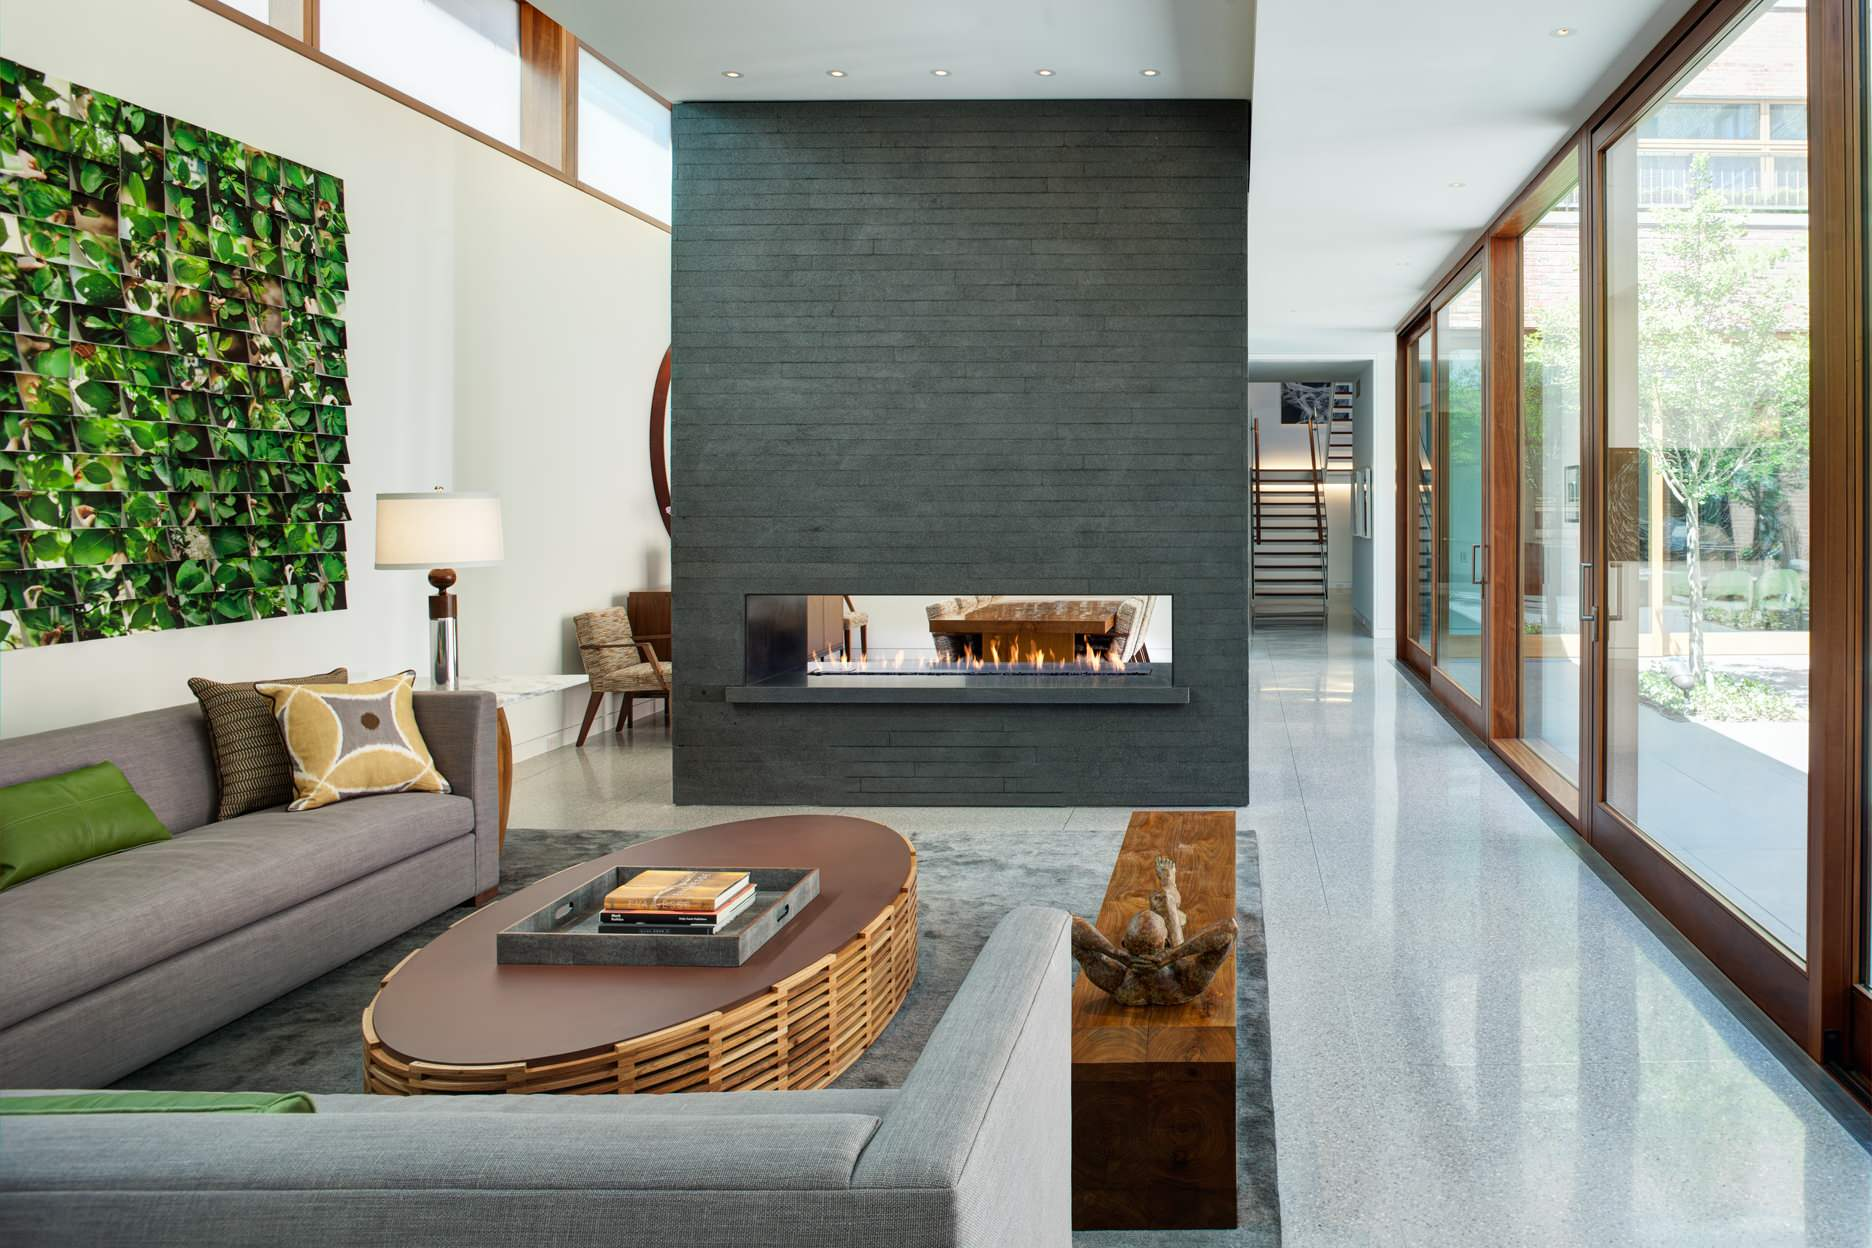 Terrazzo Floor in a modern open plan living room